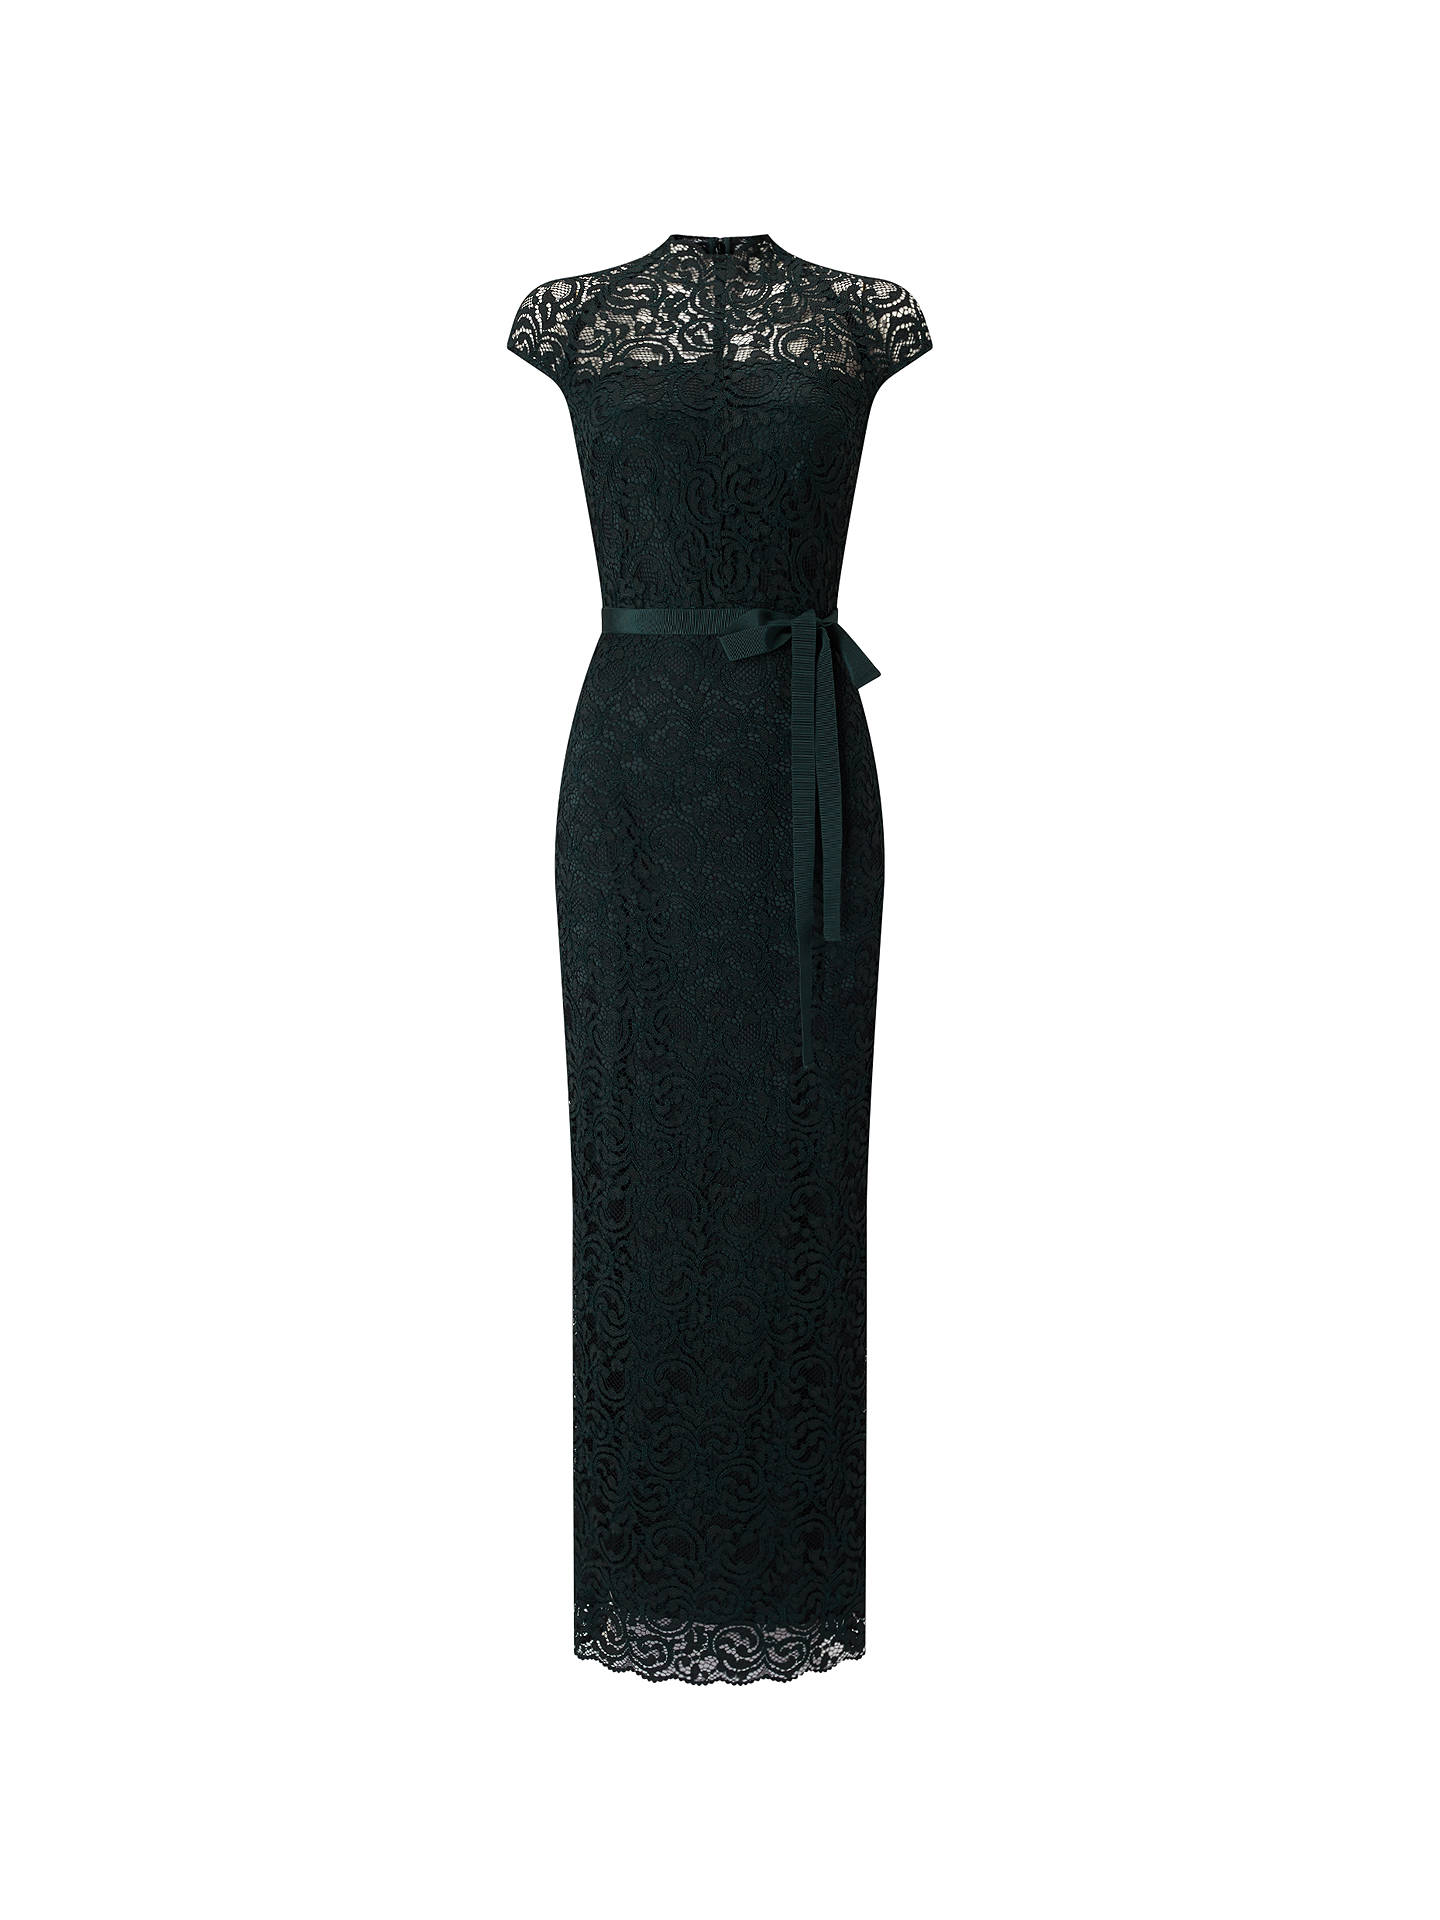 BuyPhase Eight Ramona Lace Dress, Juniper, 6 Online at johnlewis.com